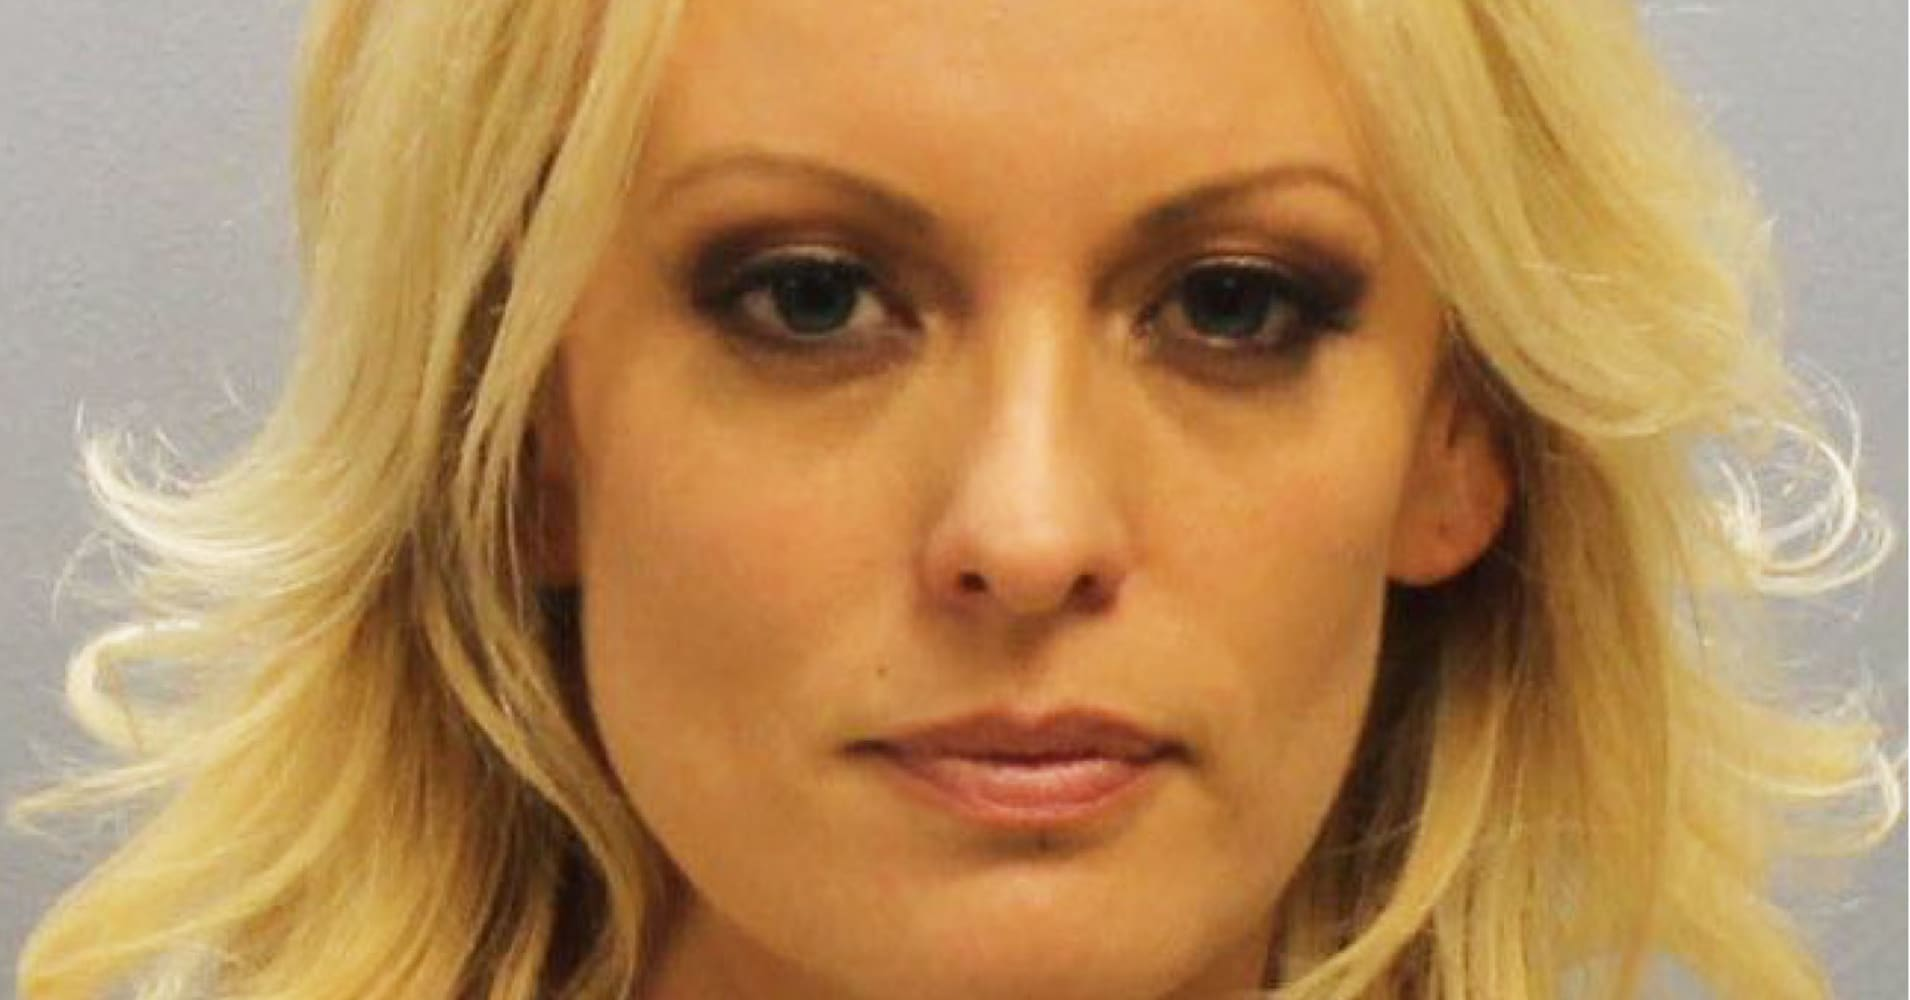 Trump and Michael Cohen want to void porn star Stormy Daniels deal, but her lawyer Avenatti says no